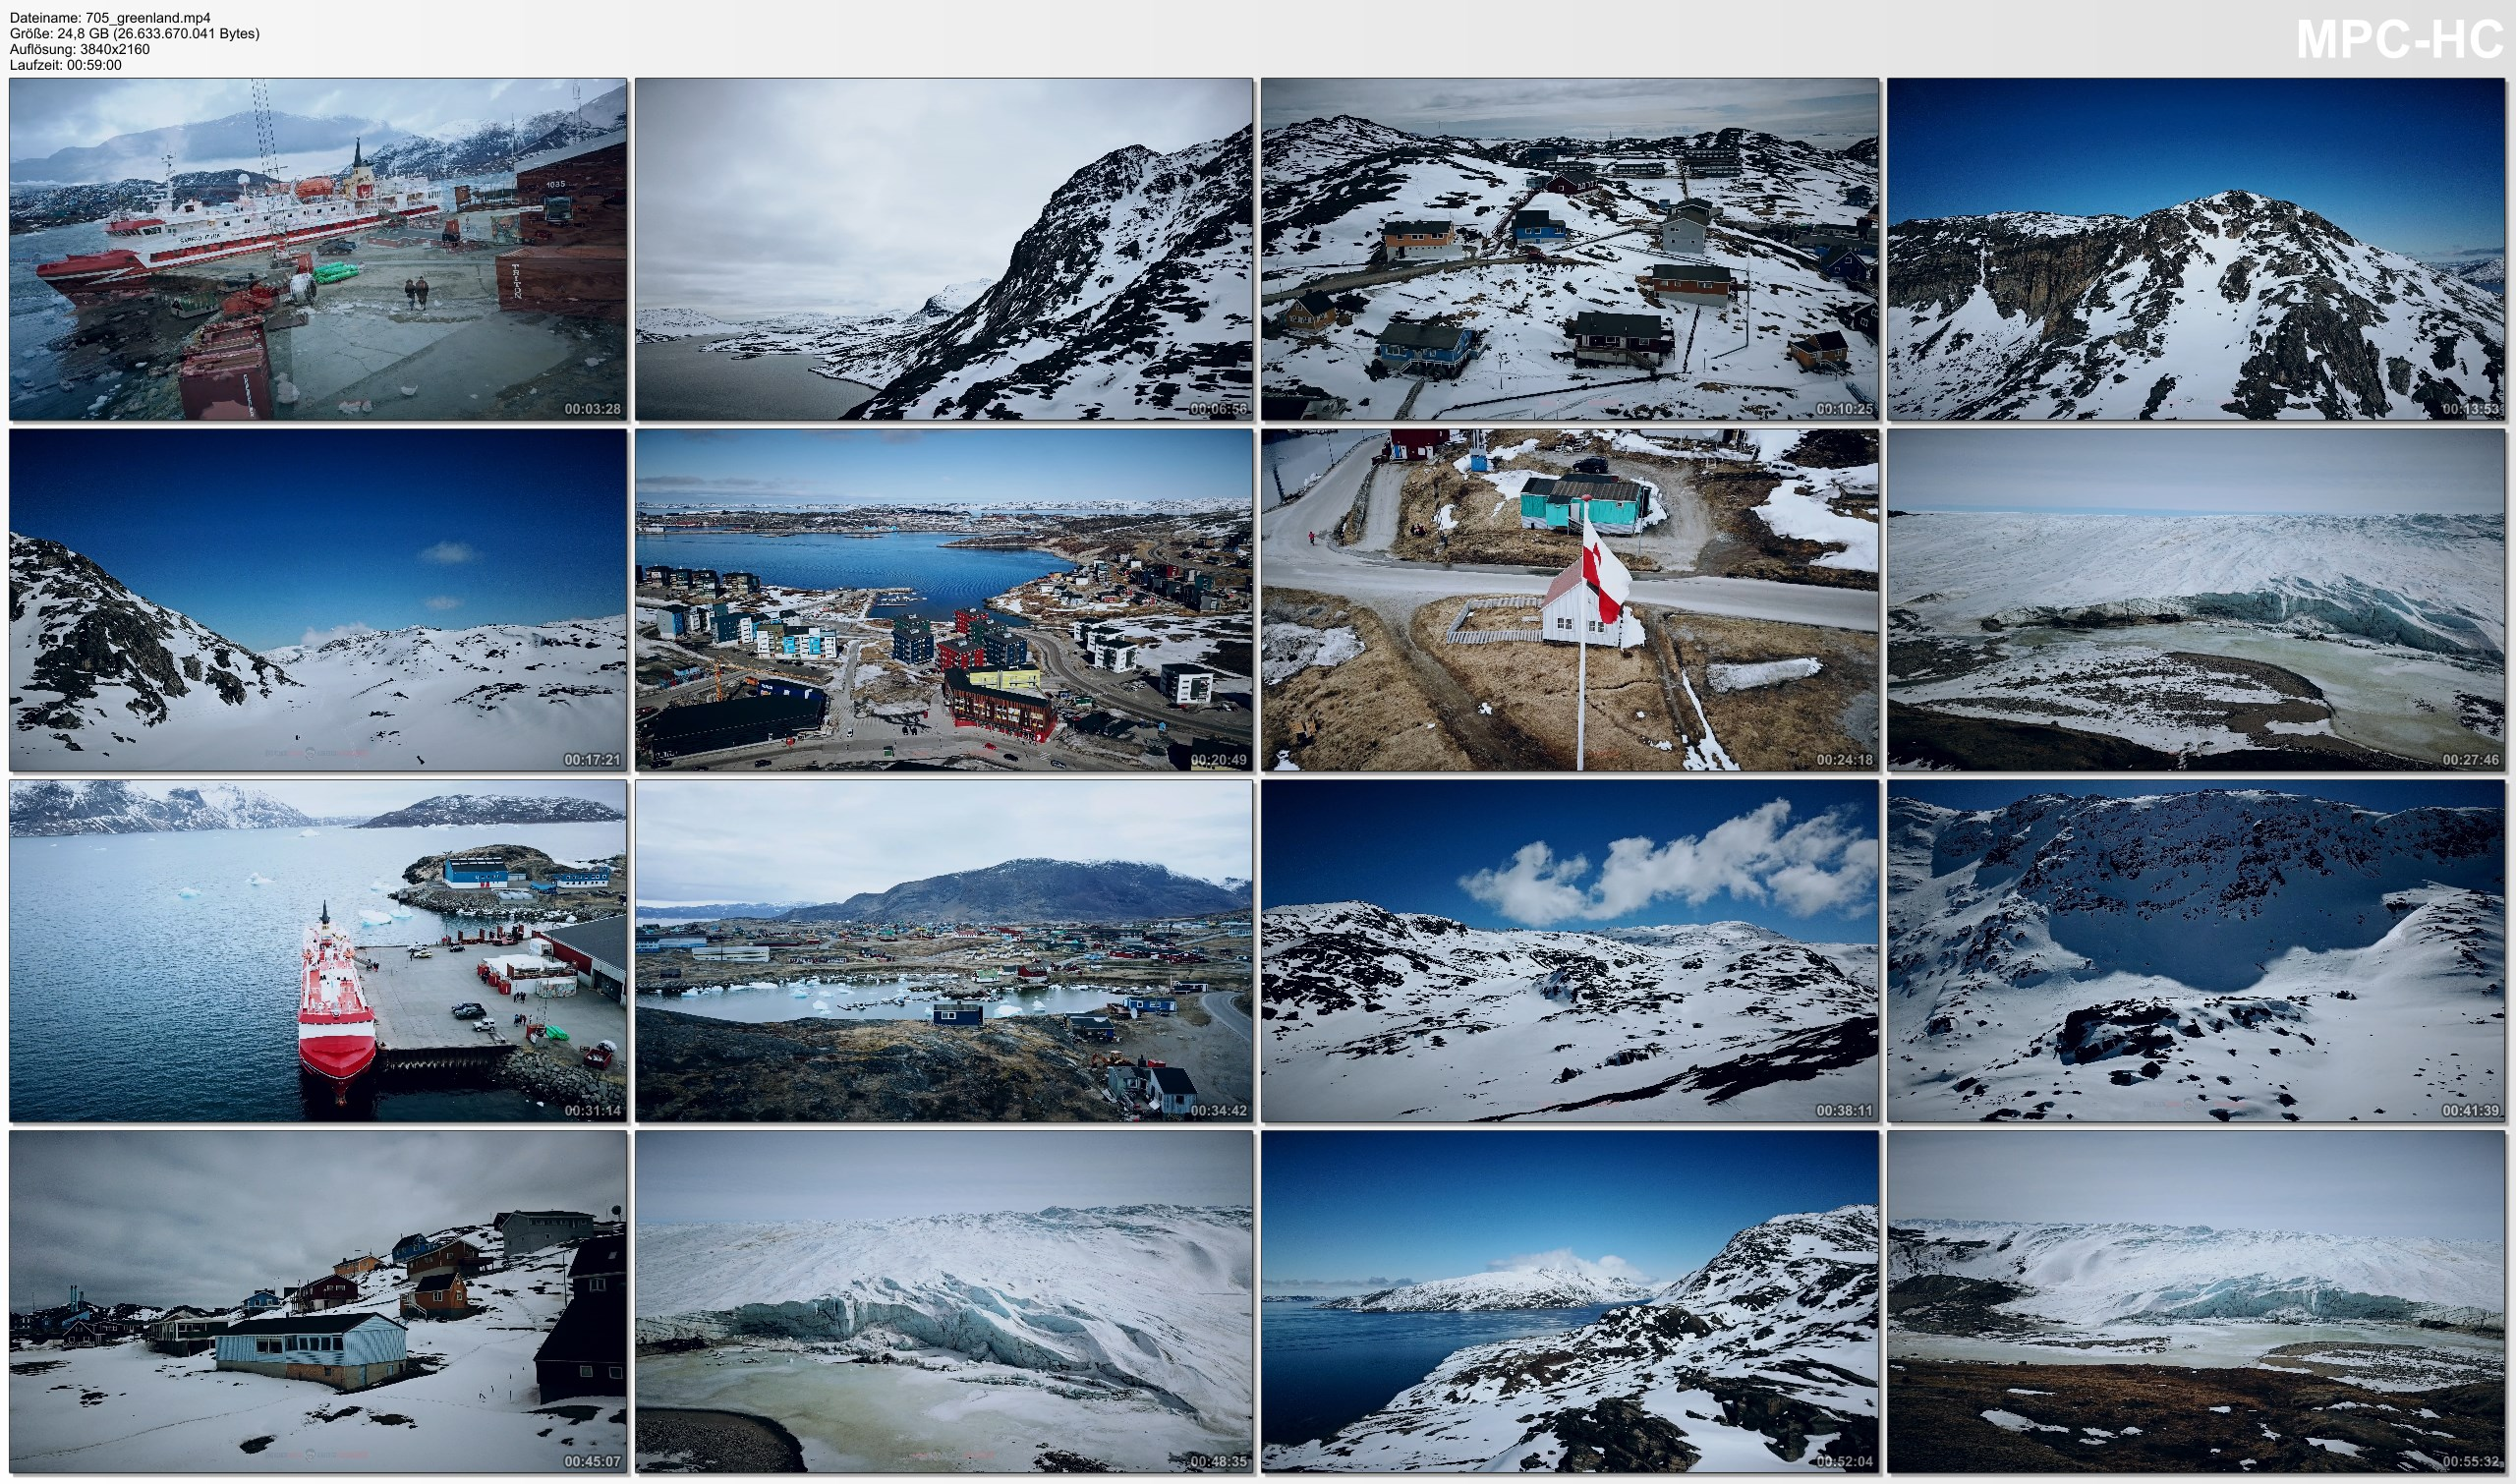 Drone Pictures from Video 【4K】1 HOUR DRONE FILM: «Greenland - The Ice Planet» Ultra HD + Chillout Music (for 2160p Ambient TV)